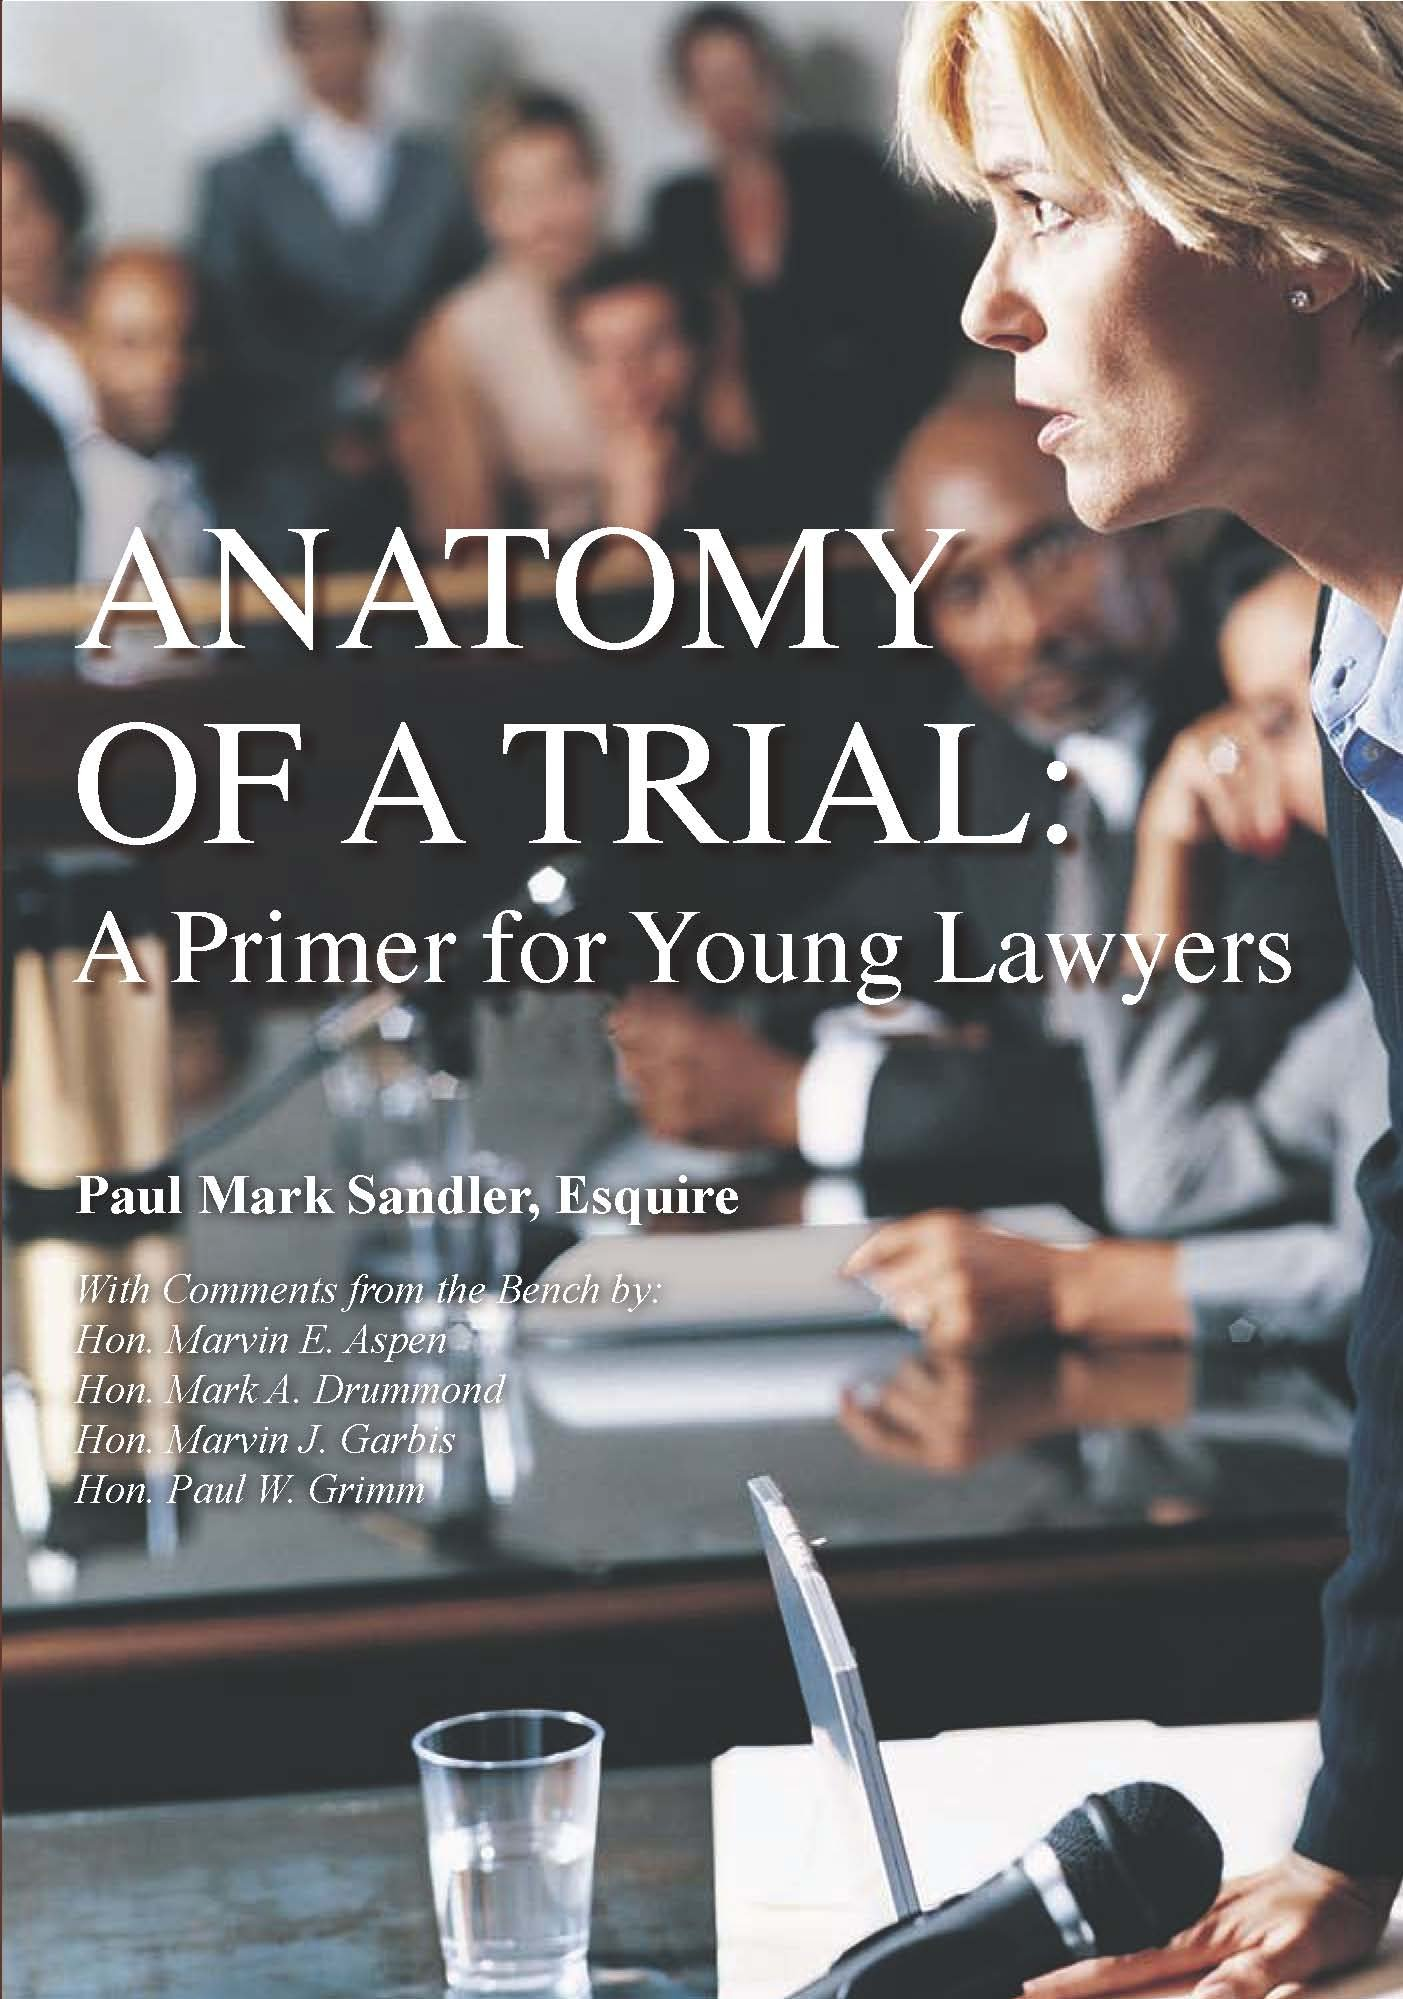 Anatomy of a Trial: A Primer for Young Lawyers: Paul Mark Sandler ...